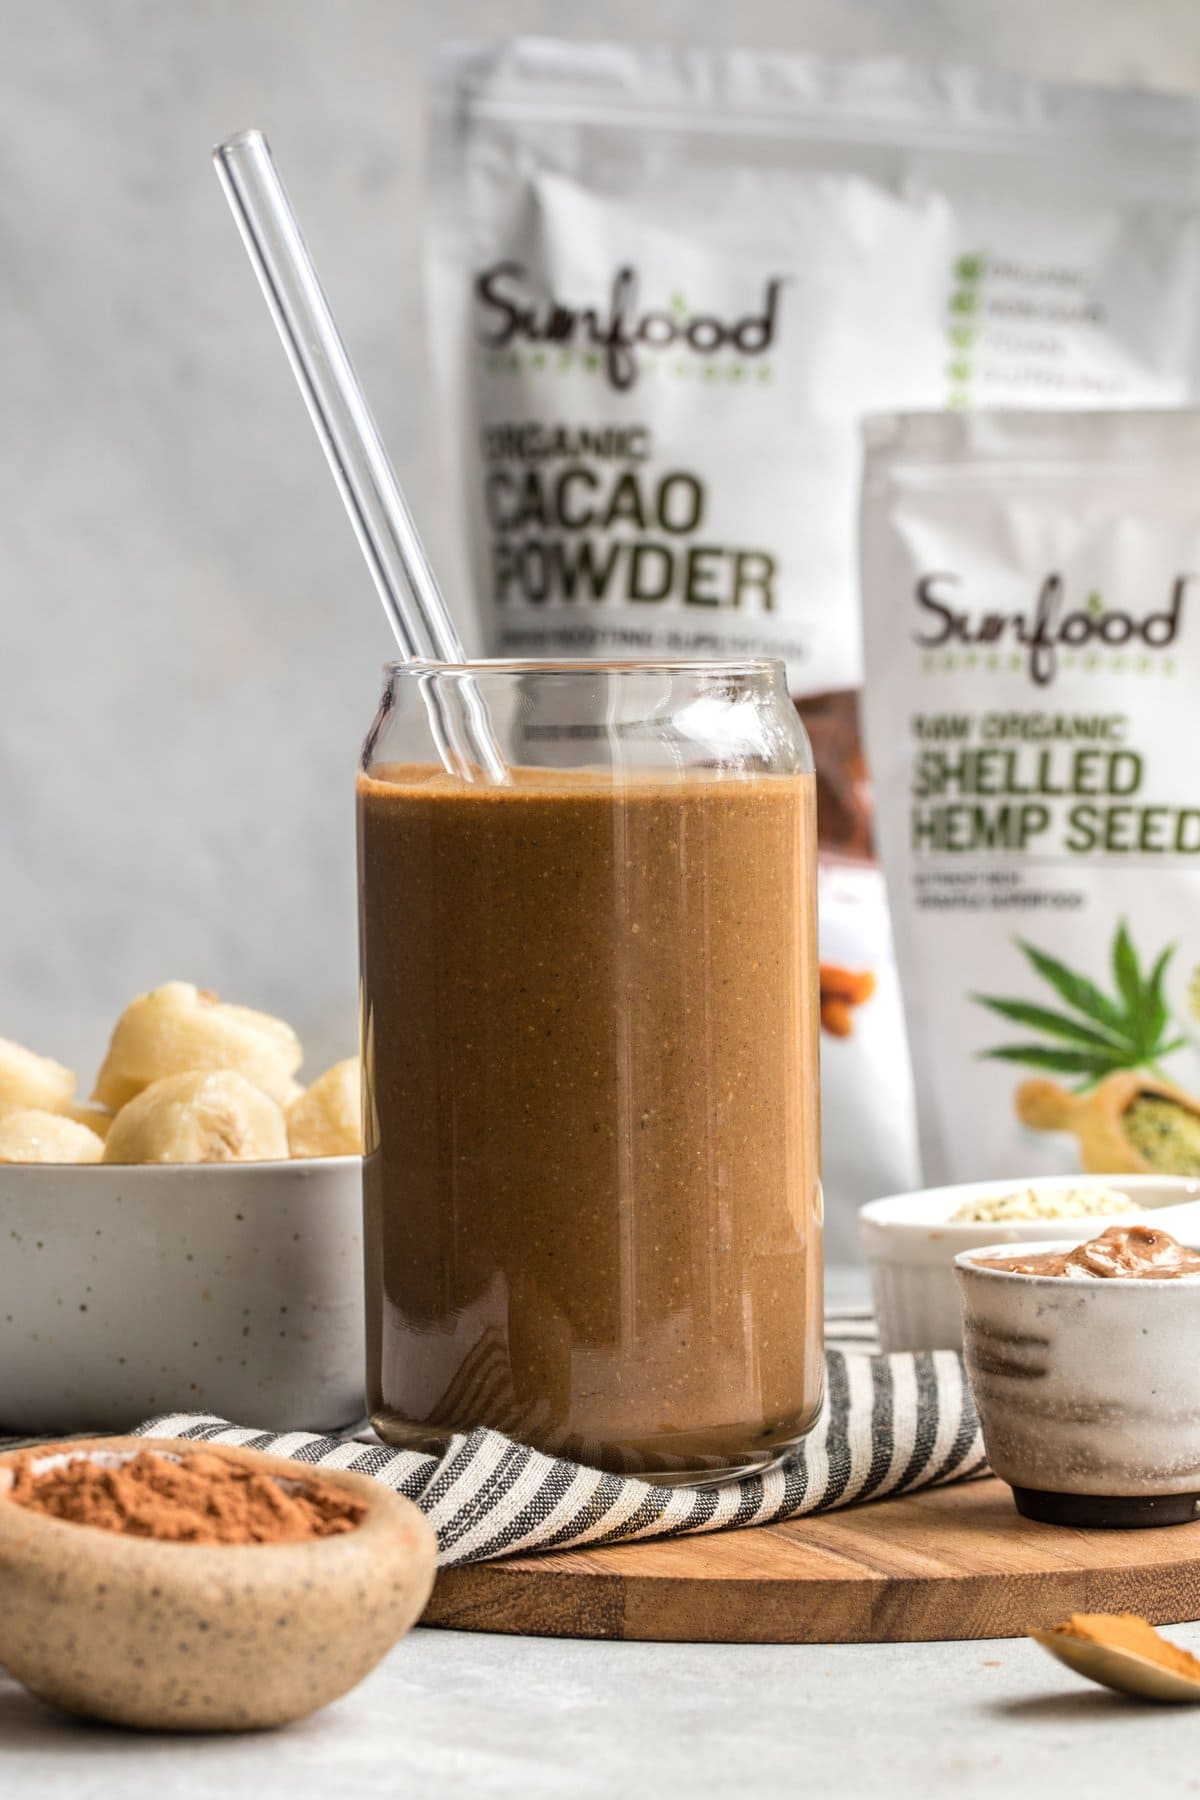 chocolate hemp smoothie in glass with straw with sunfood product in background